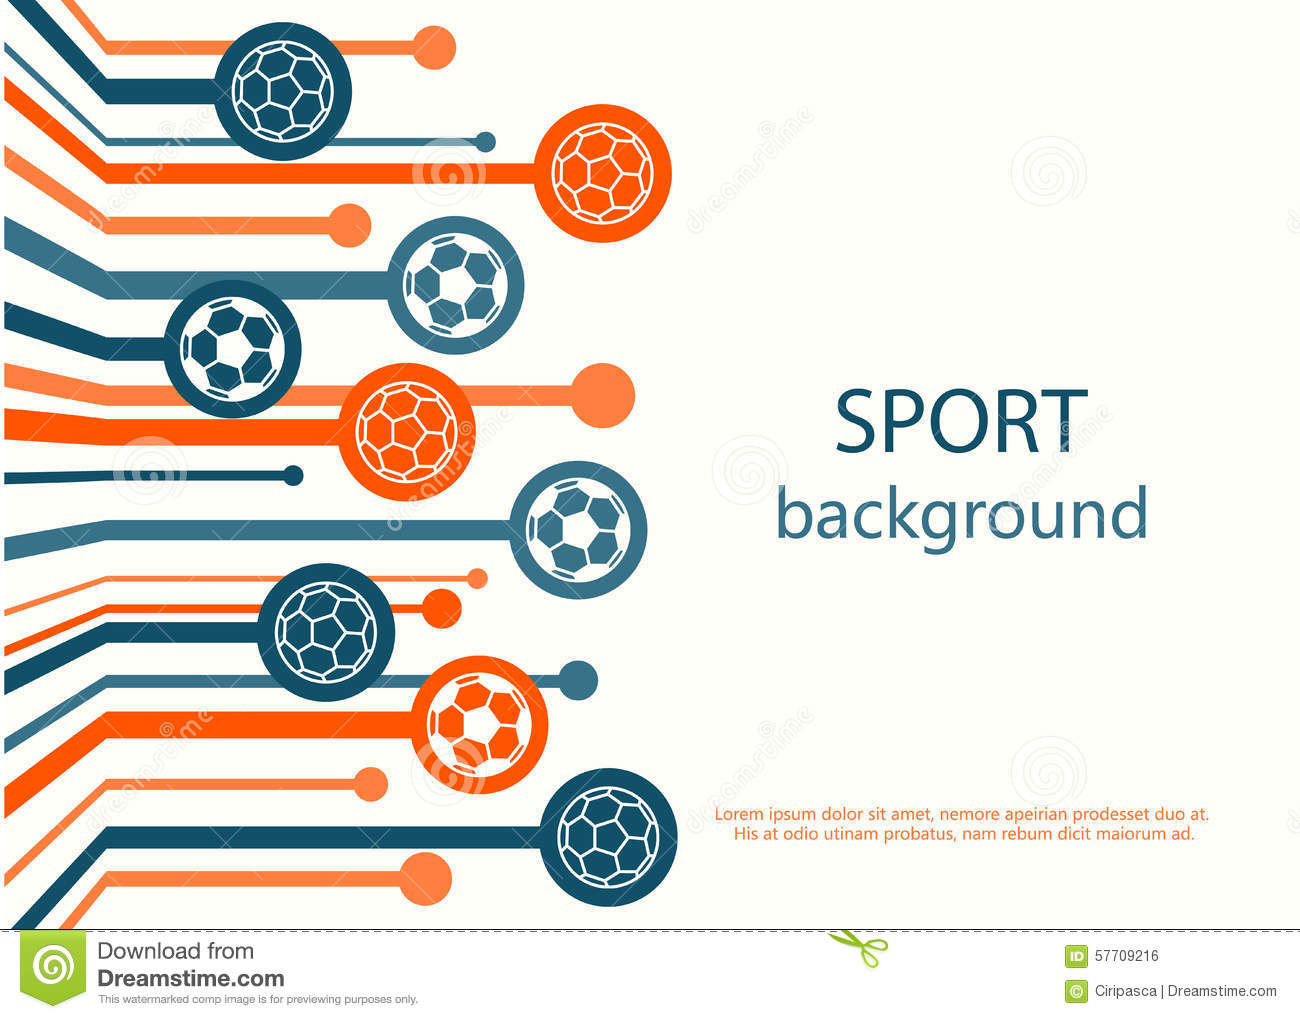 Download 9500 Background Banner Sport Design Gratis Terbaik